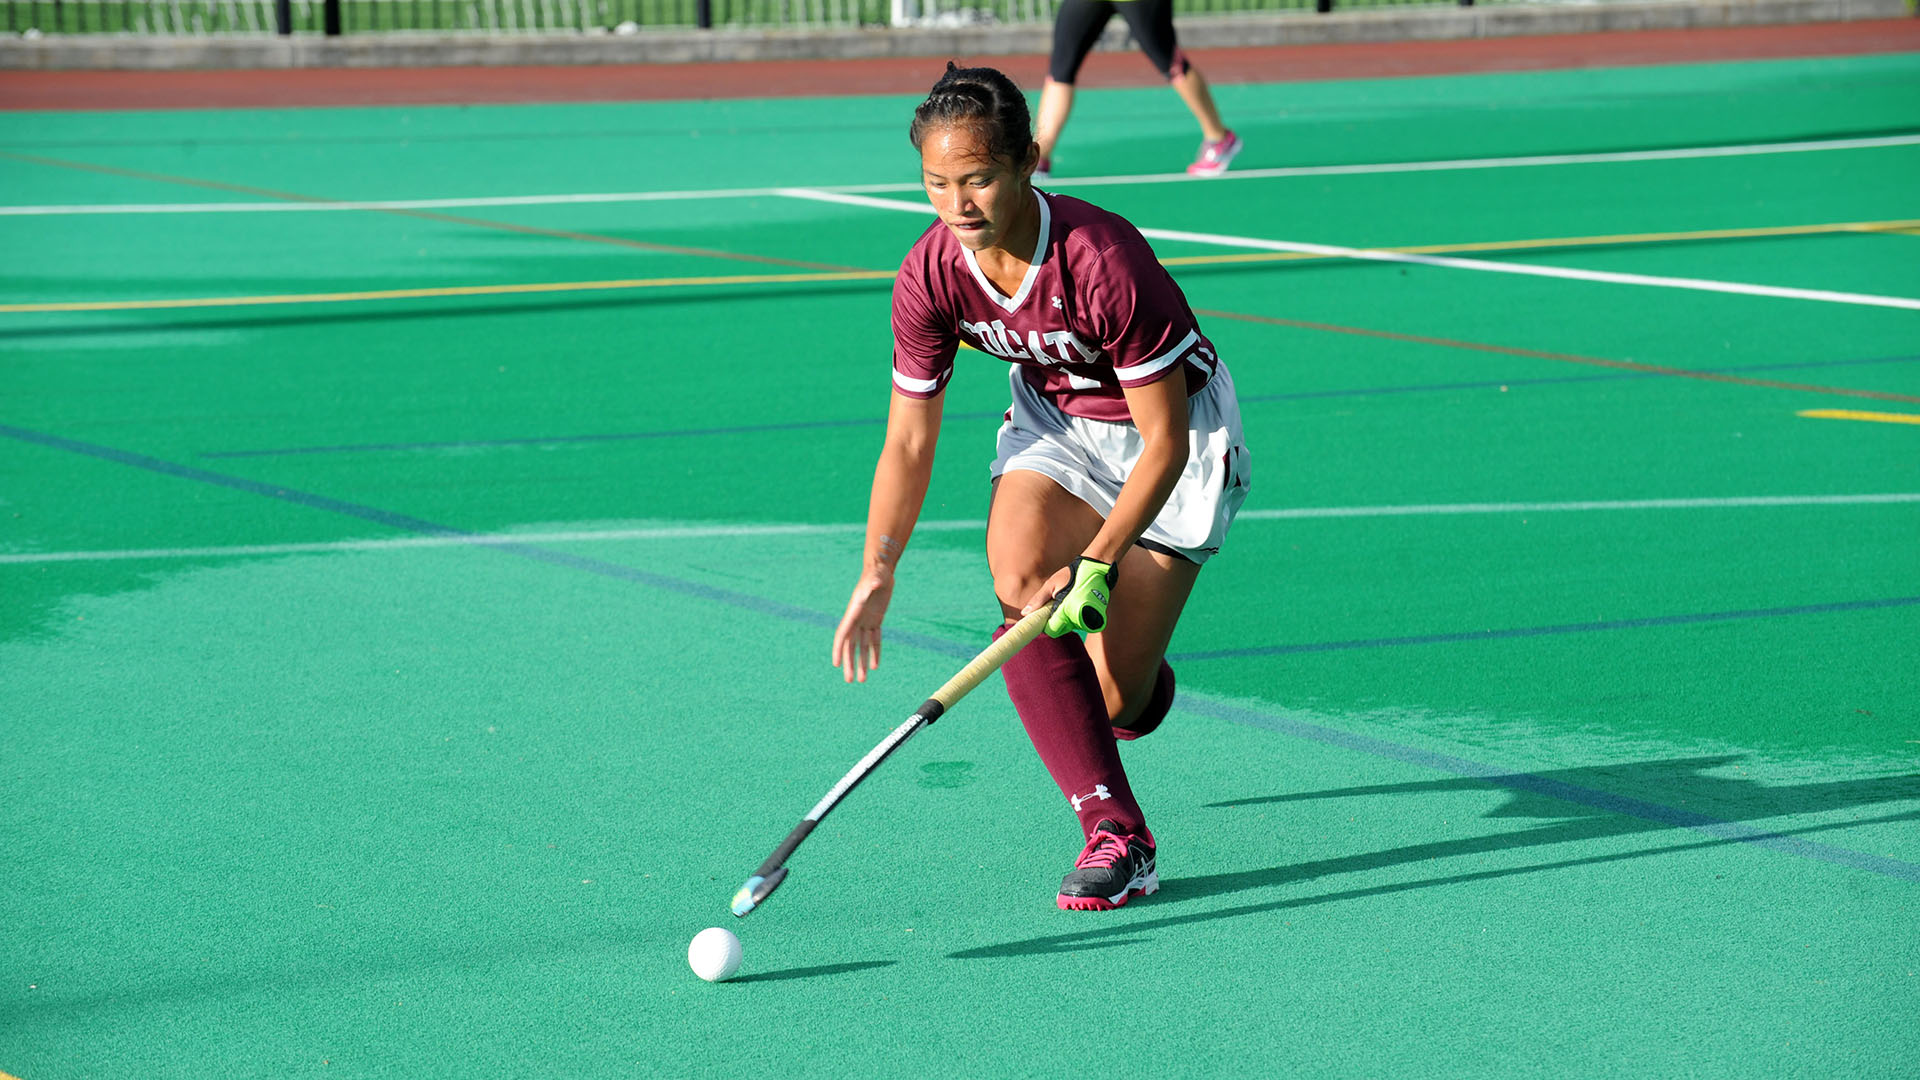 cabuhay nets first career goal at american colgate athletics